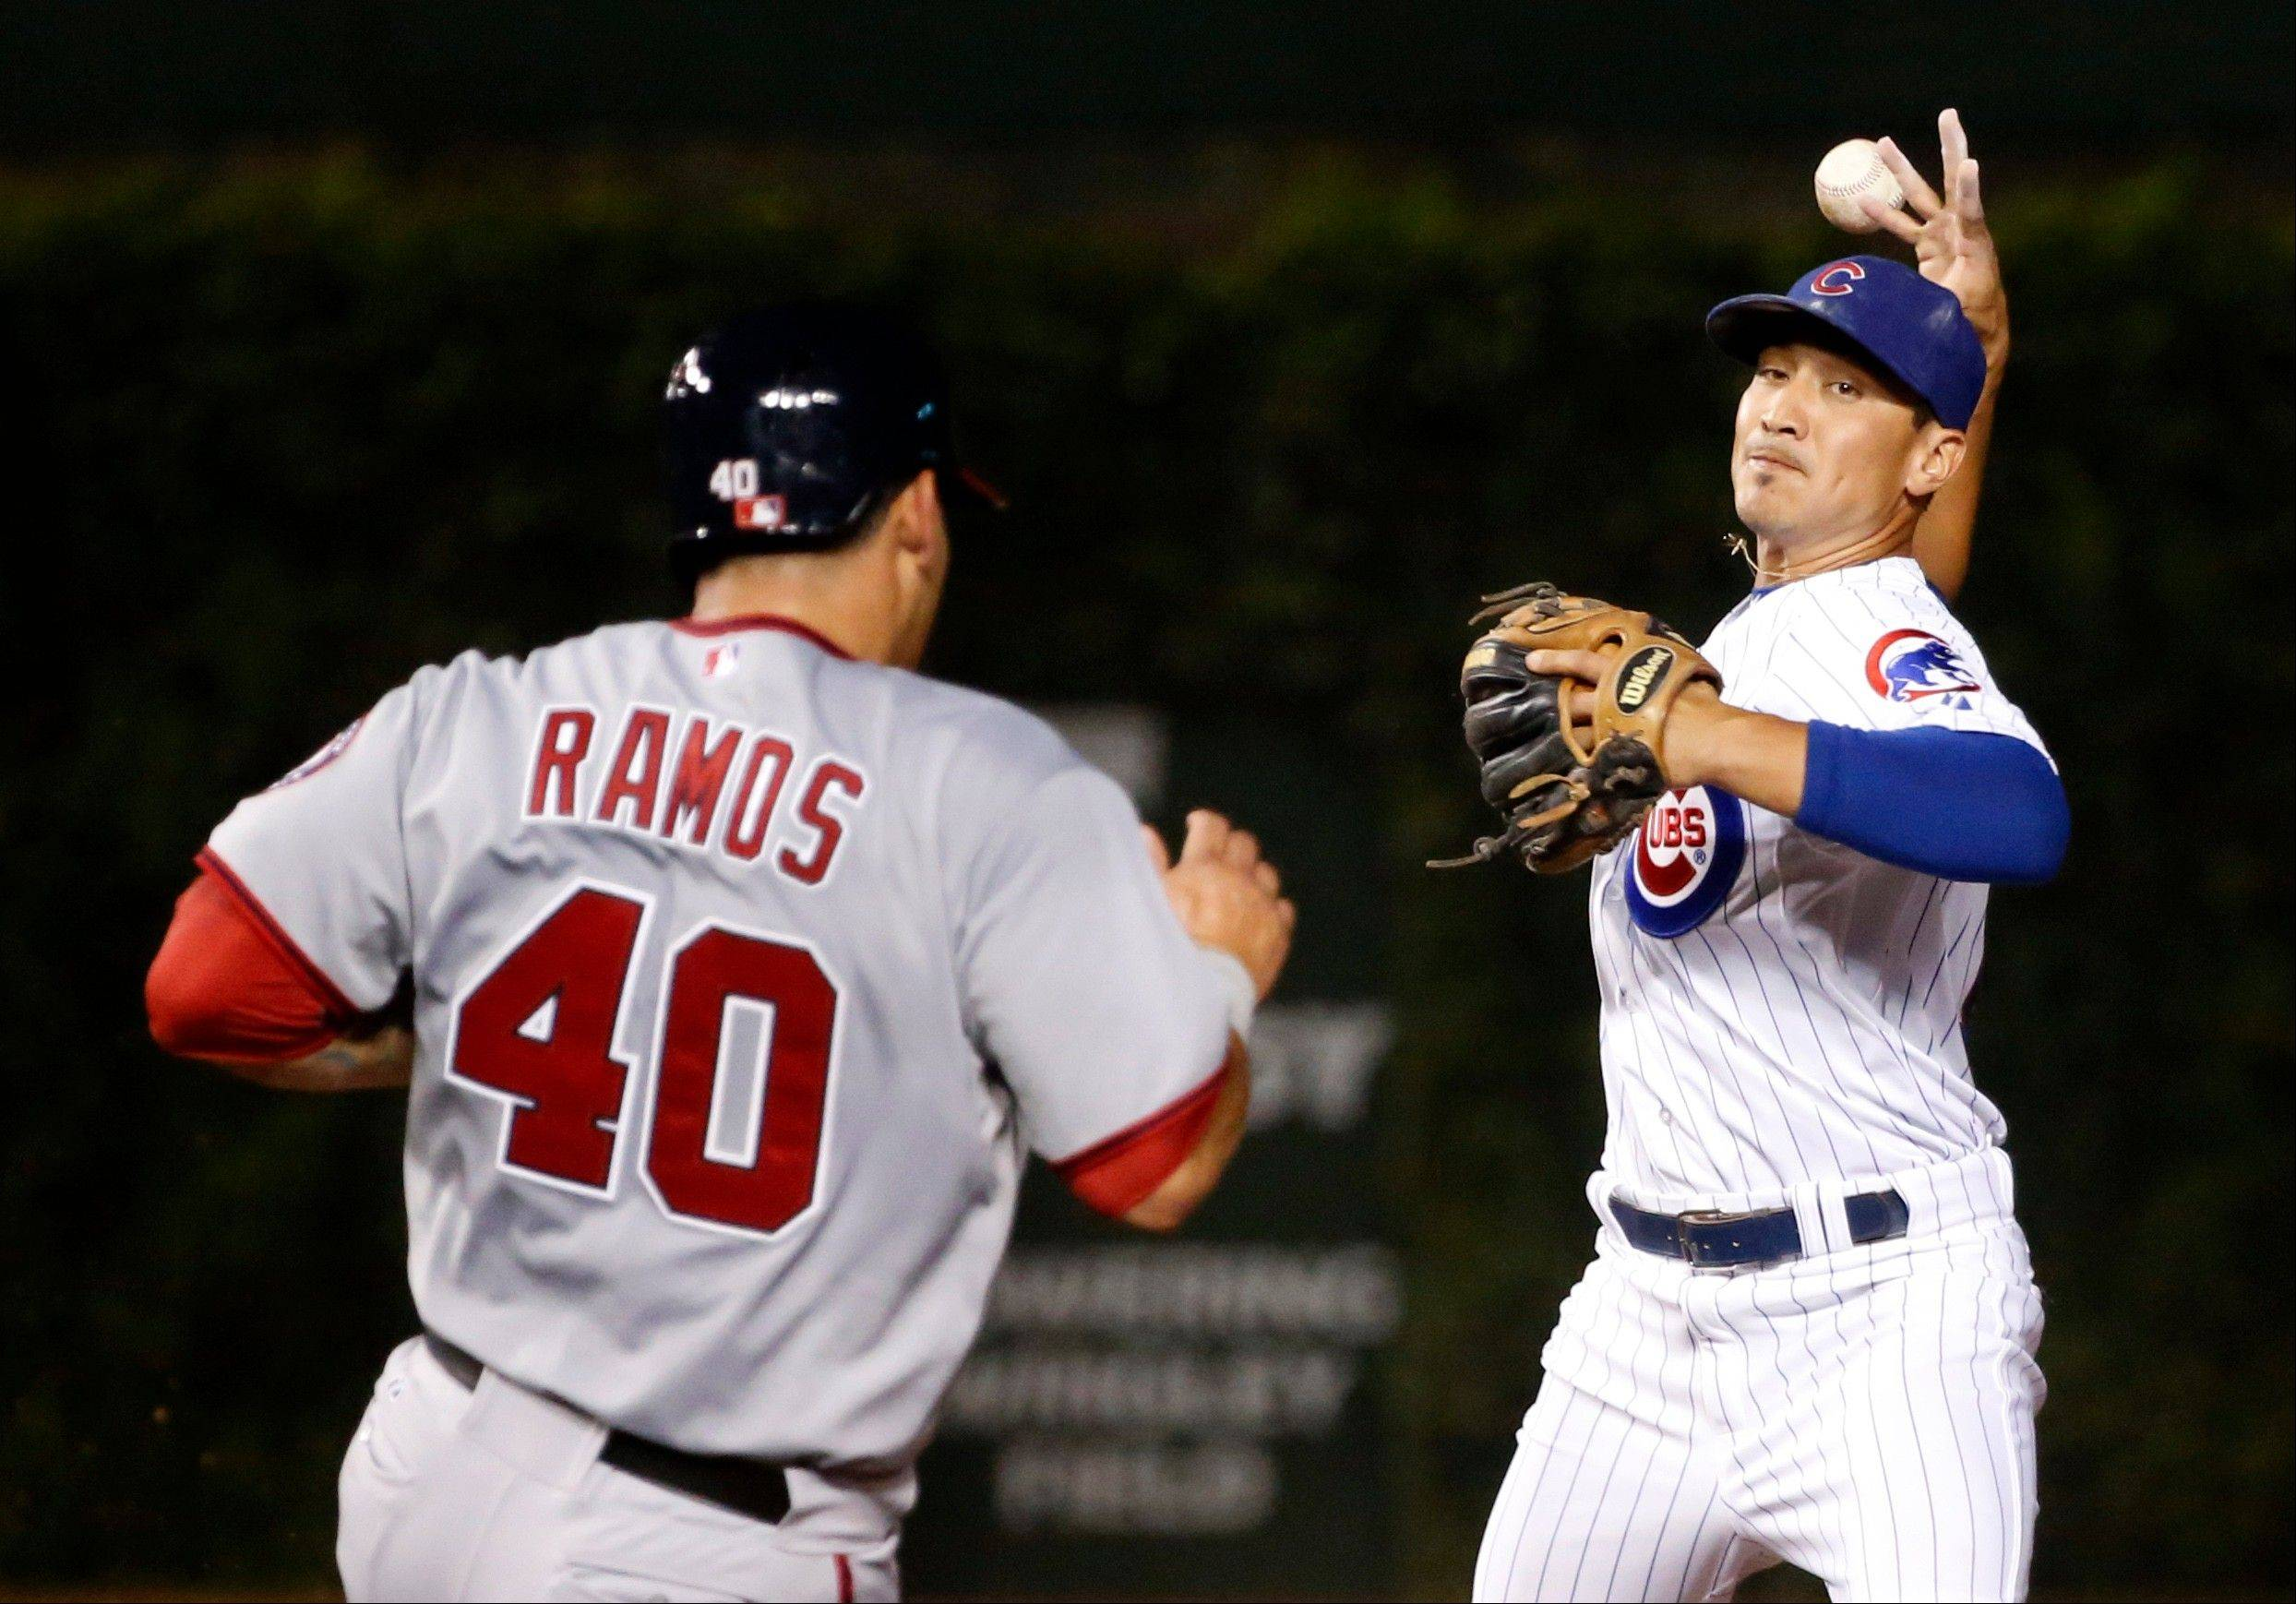 Cubs second baseman Darwin Barney loses his grip on the ball after forcing out the Nationals' Wilson Ramos at second on Tuesday during the fourth inning in Chicago.